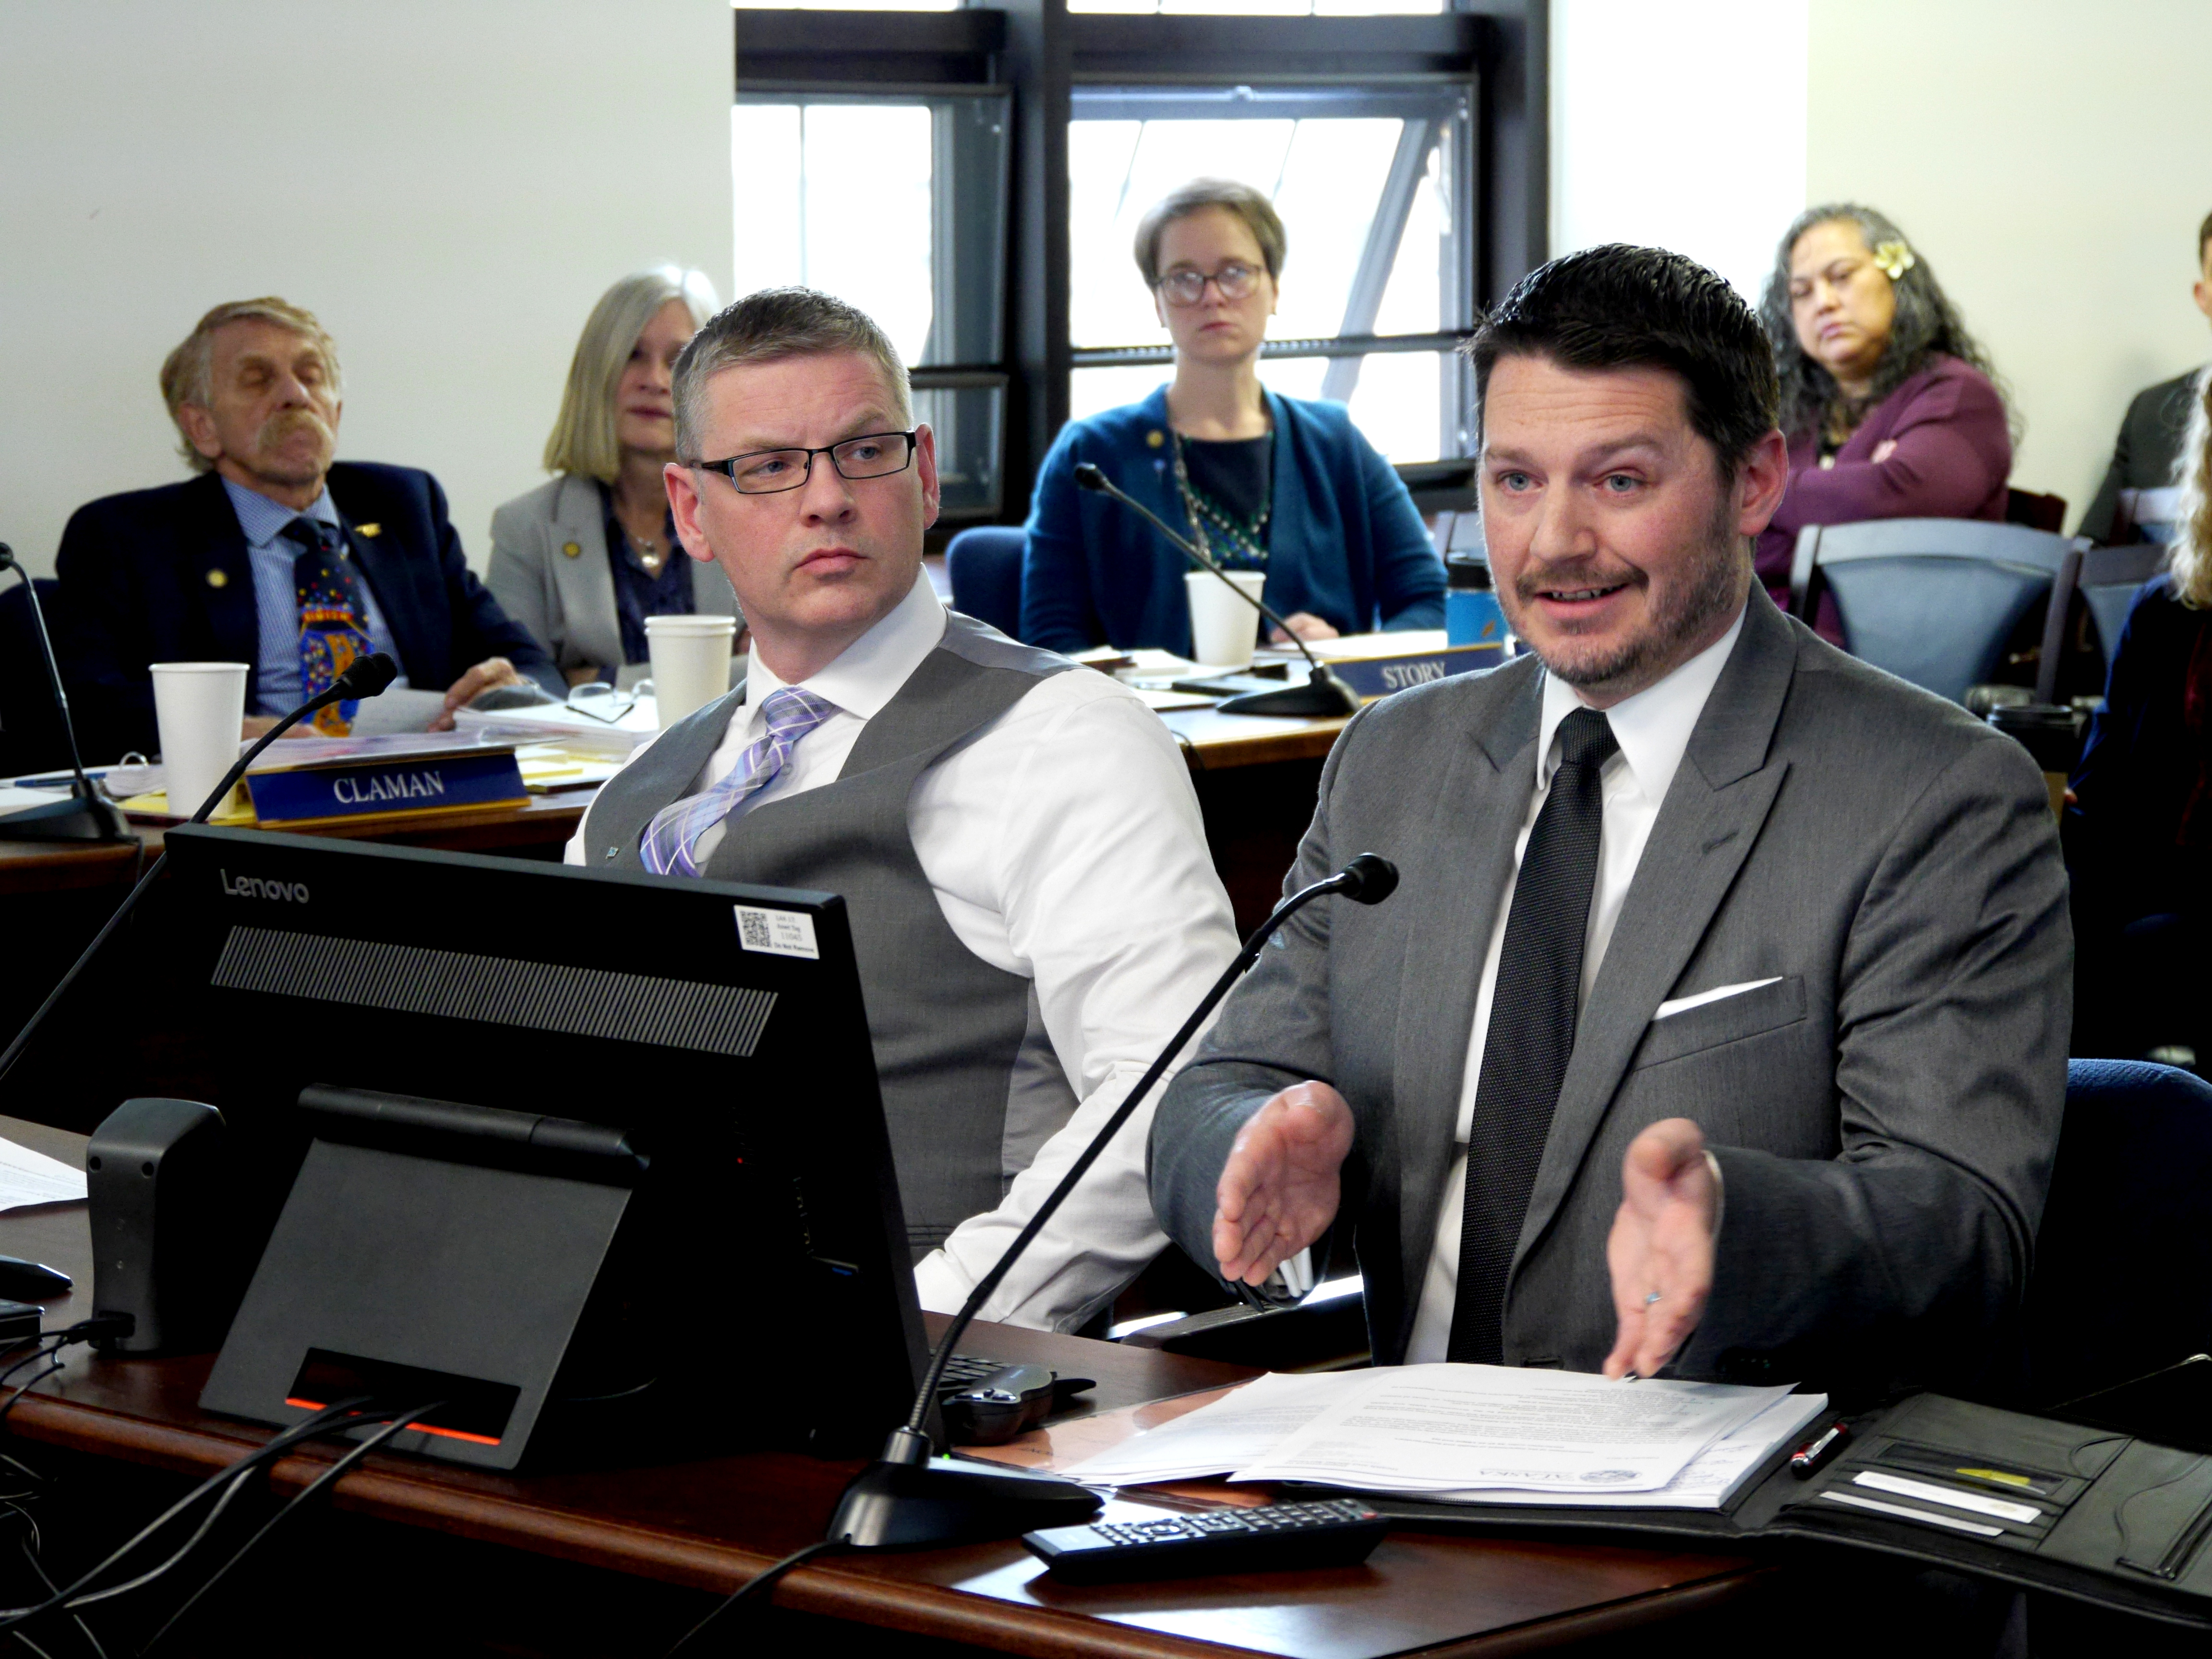 Department of Health and Social Services Deputy Commissioner Albert Wall, left, and Department of Administration Chief Procurement Officer Jason Soza field questions from members of the Health and Social Services and State Affairs committees in Juneau on April 2, 2019. The committees were examining procurement procedures that led to a controversial contract to manage the Alaska Psychiatric Institute.